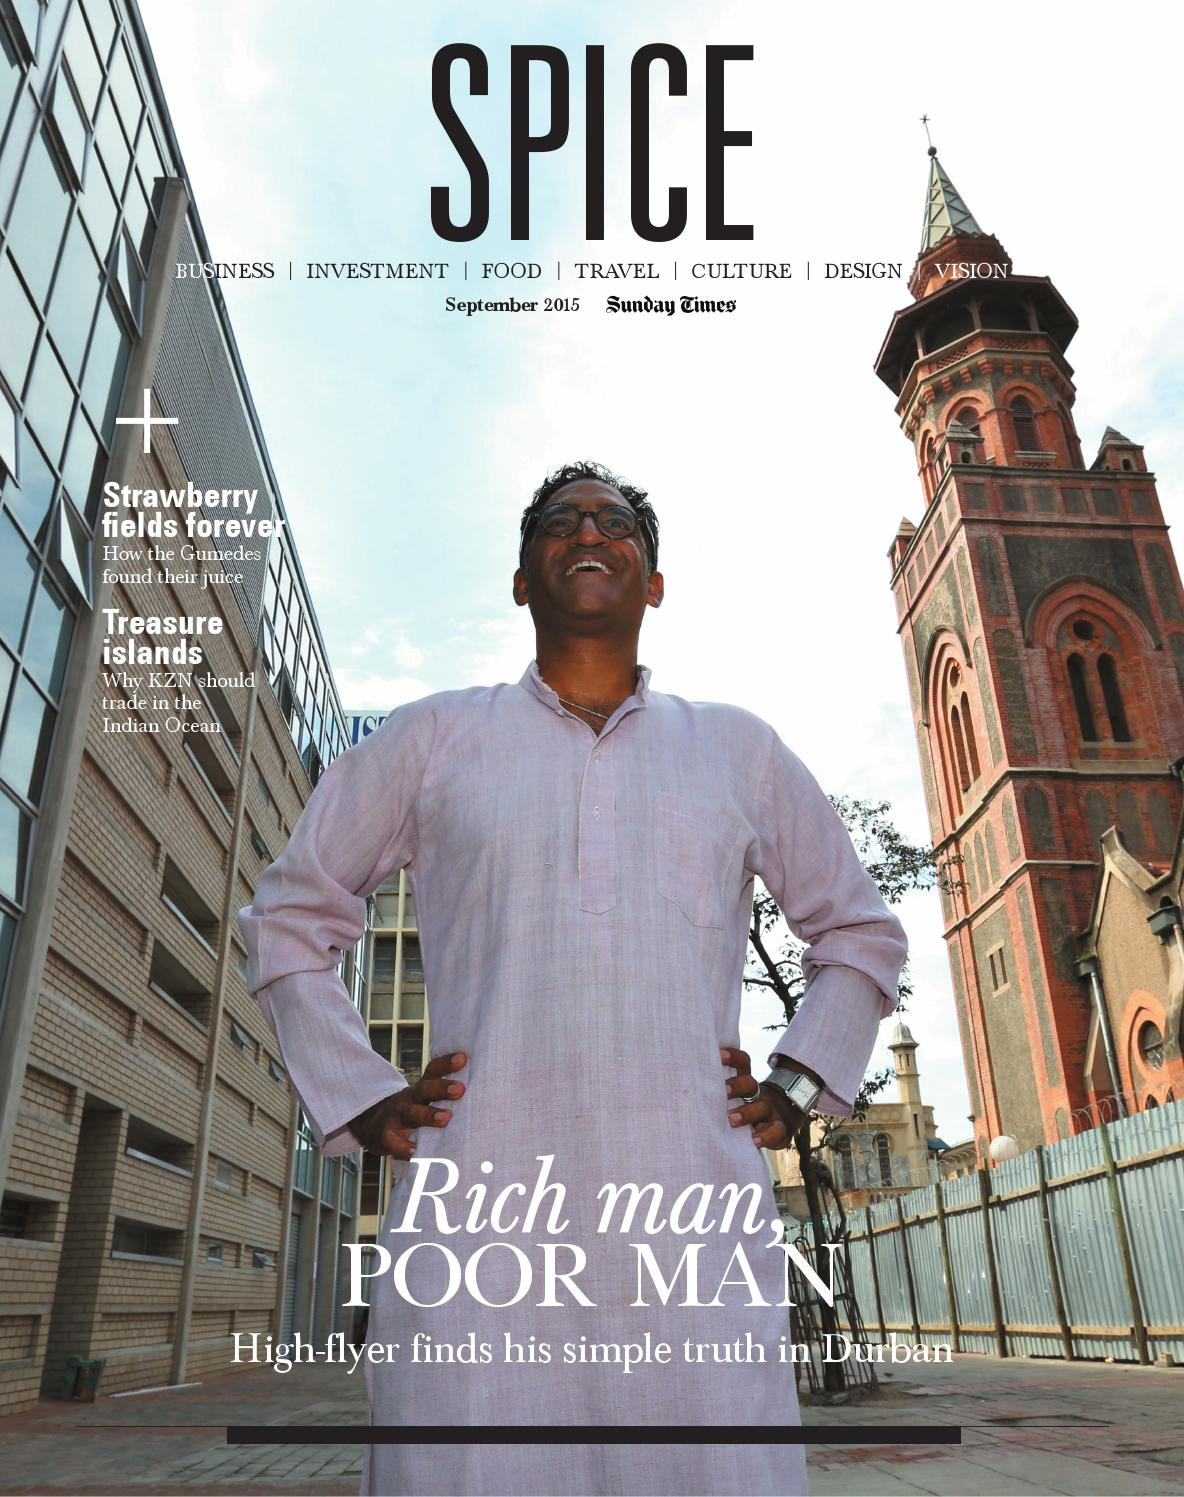 Sunday times spice magazine sept 2015 by sundaytimesza issuu altavistaventures Images